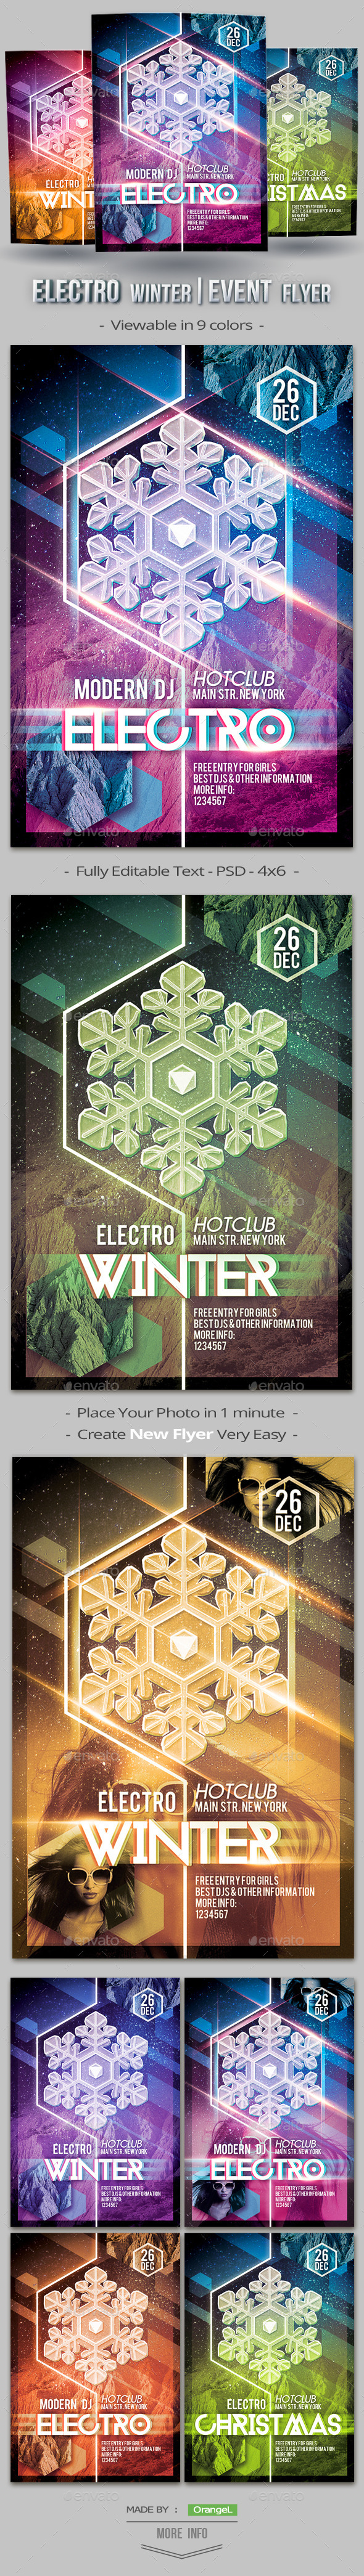 Electro Winter Event Flyer Template - Events Flyers